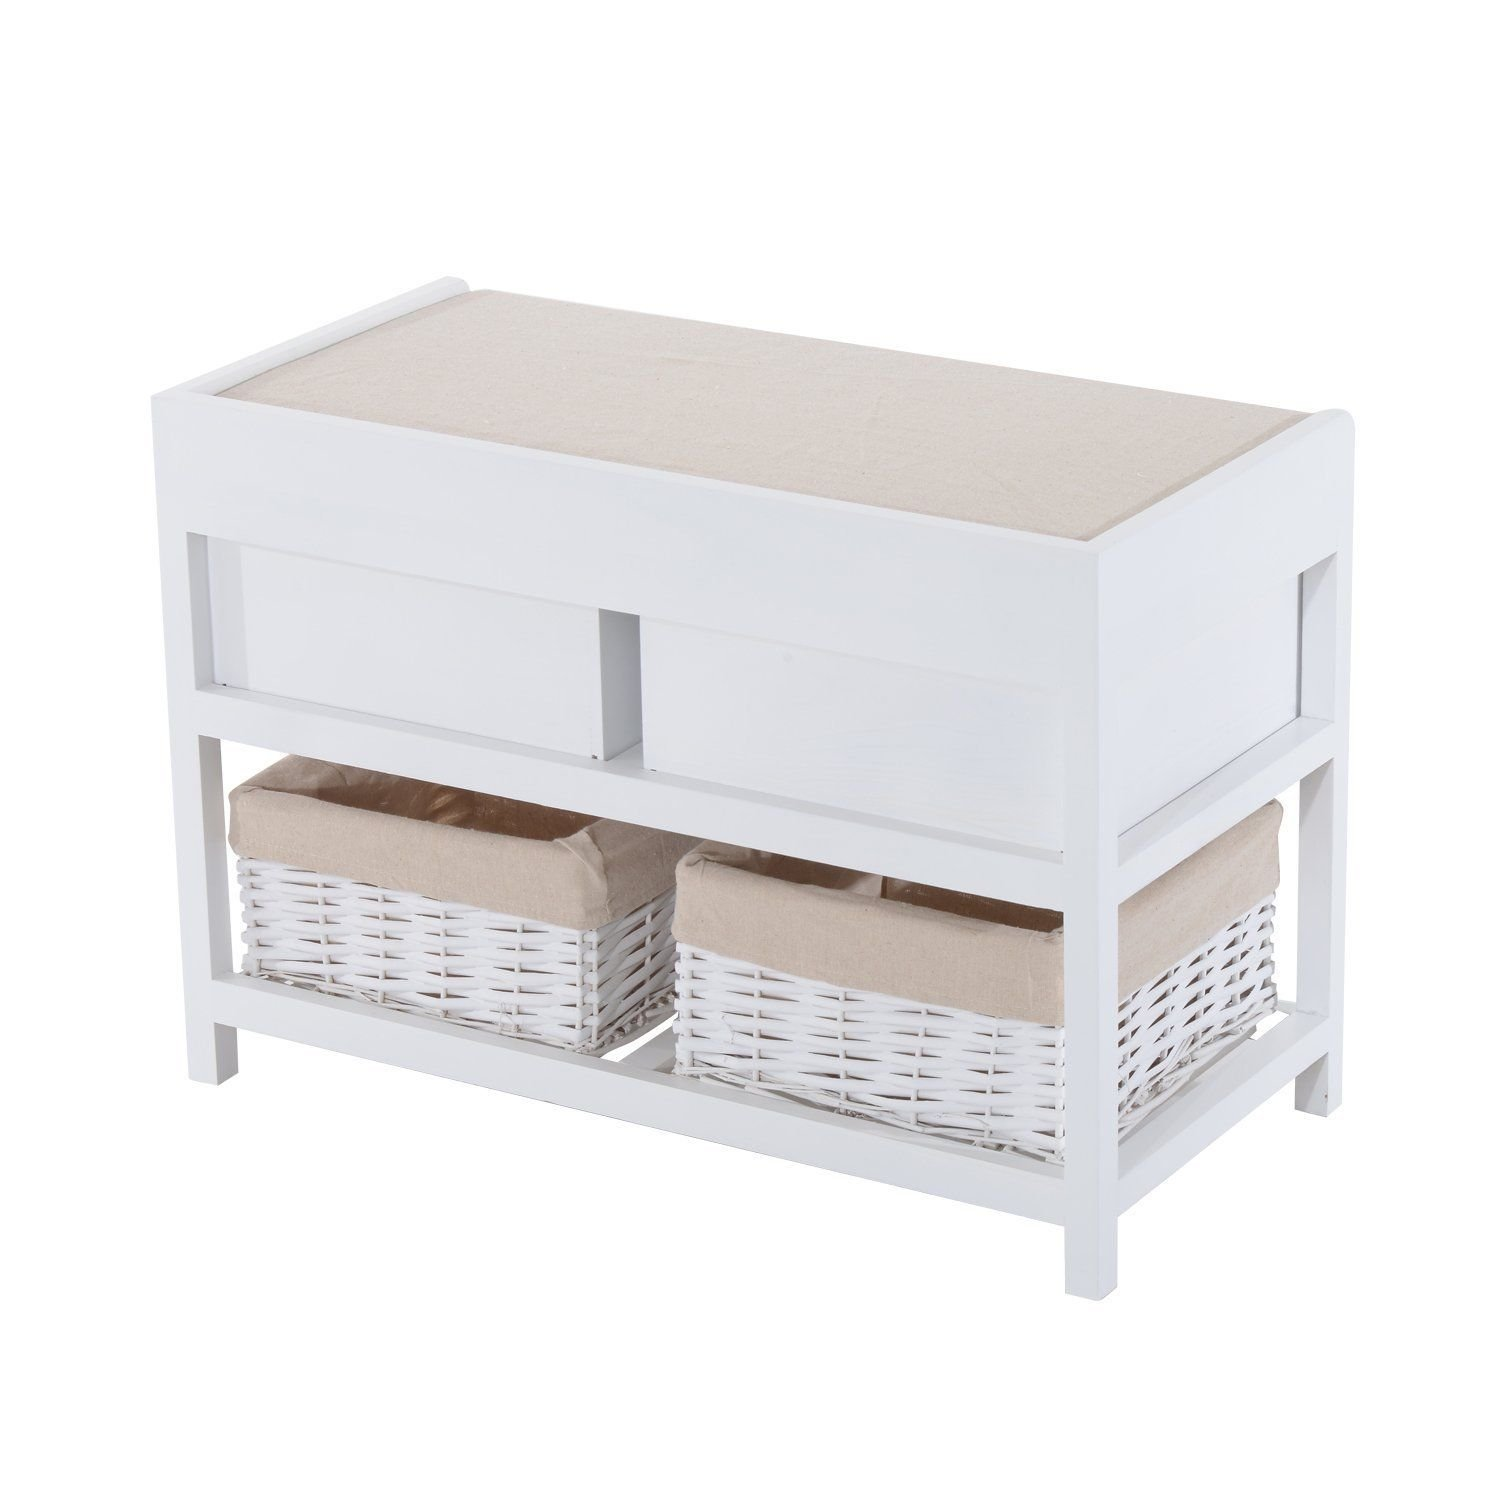 HOMCOM Wooden Unit Storage Bench Wood Seat Seater Woven Wicker Baskets Drawers Hallway Porch White w/ Cushion & Removable Linings (2 drawers & 2 baskets) Sold by MHSTAR 833-075WT